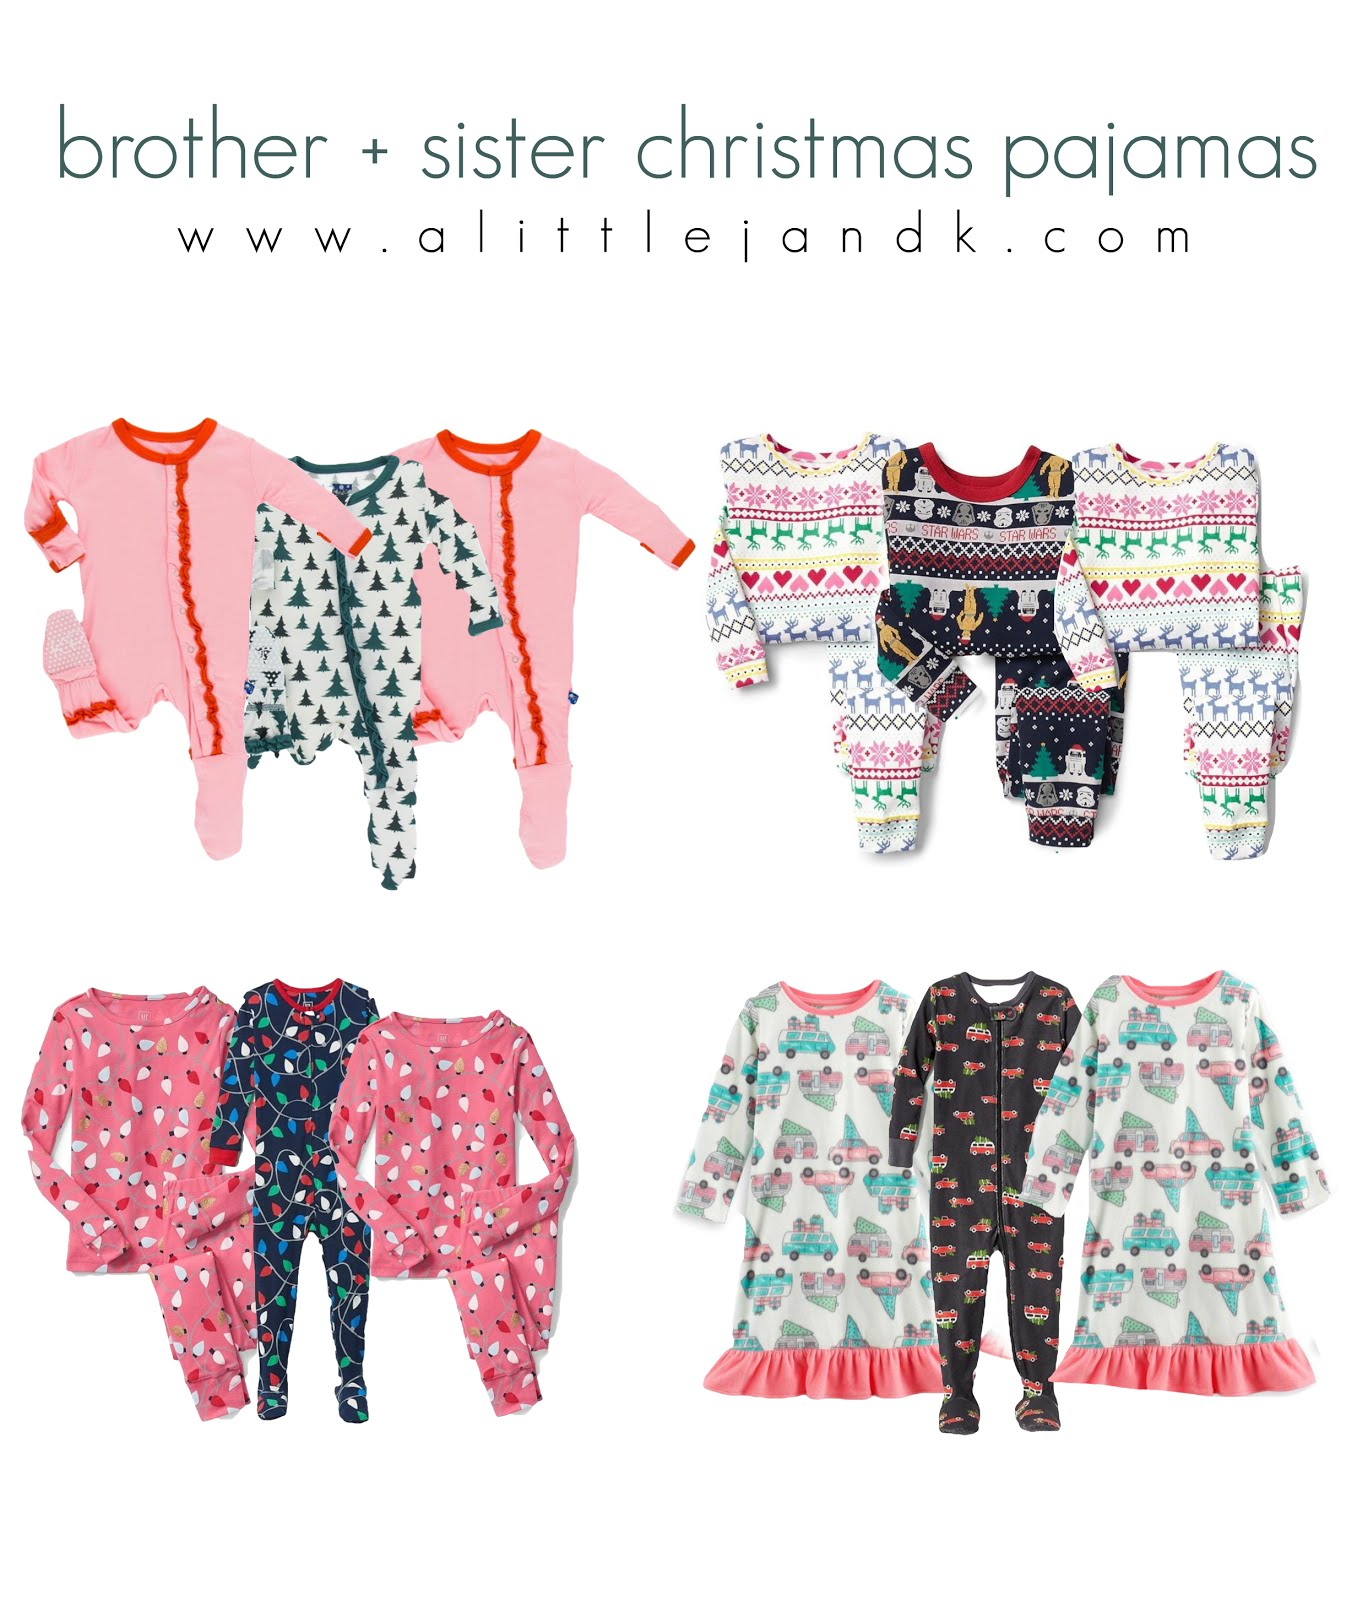 a little j+k: coordinating brother + sister Christmas pajamas